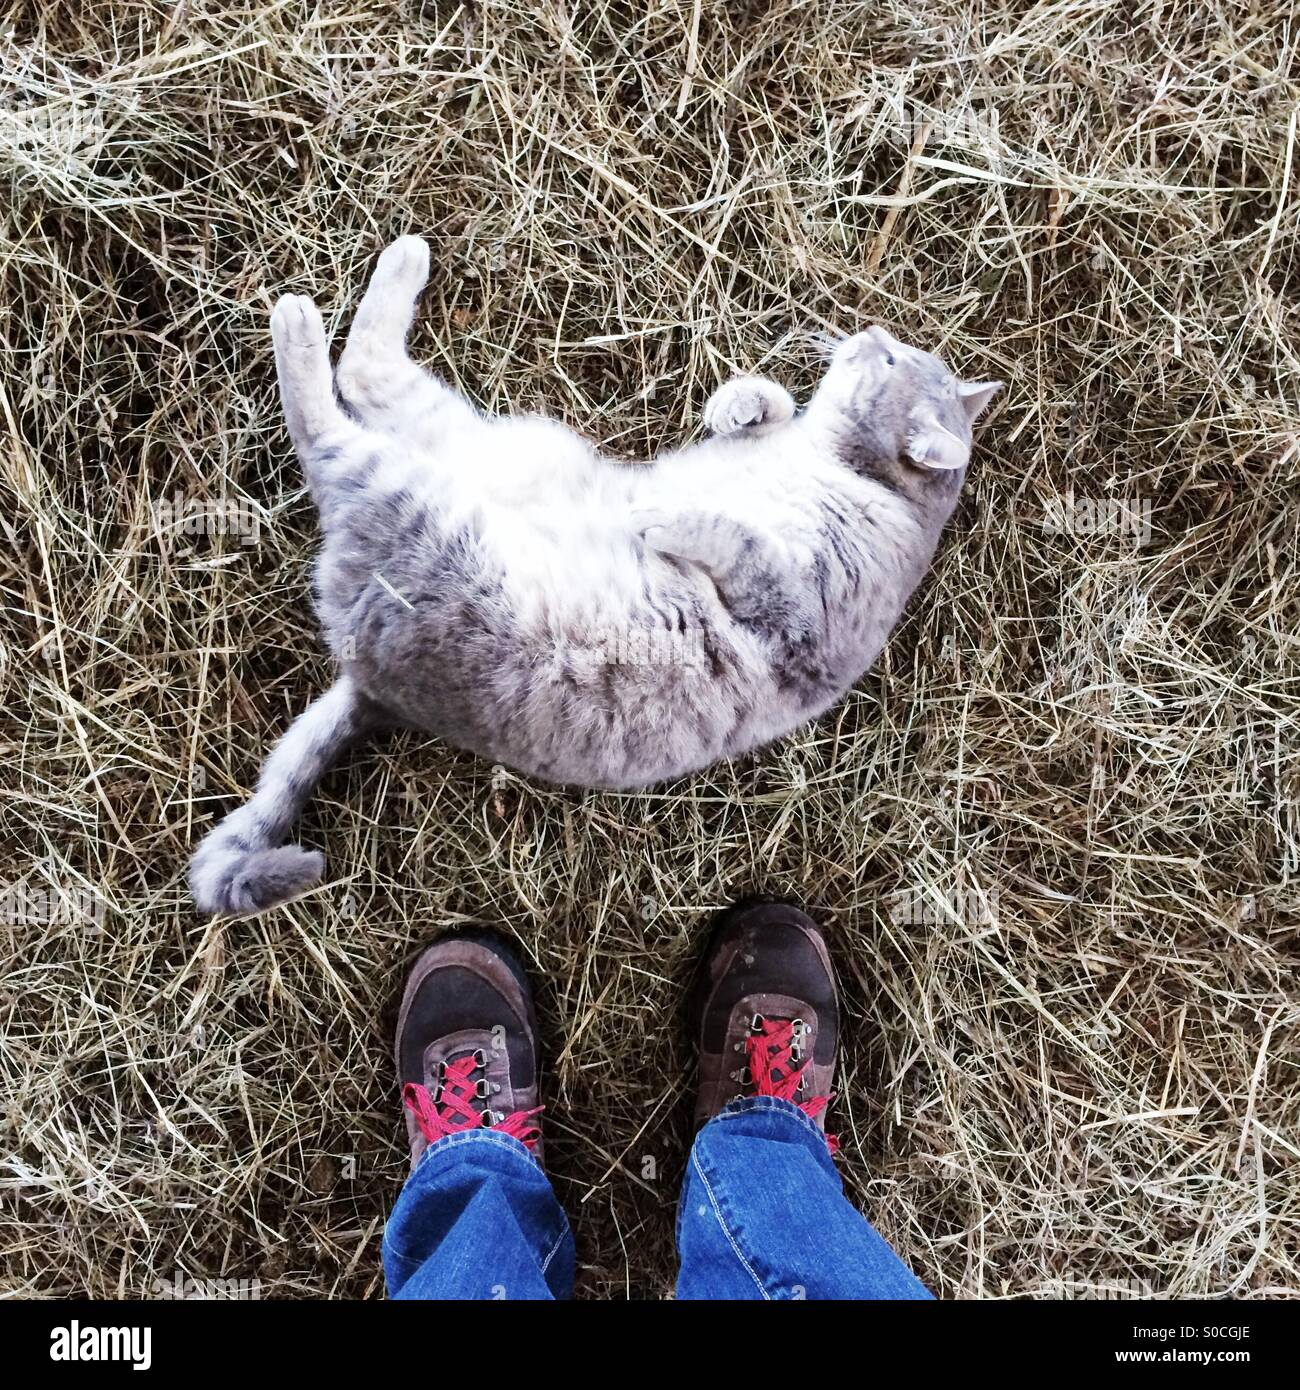 Looking down at a cat rolling around in hay on a farm in Massachusetts, USA. - Stock Image